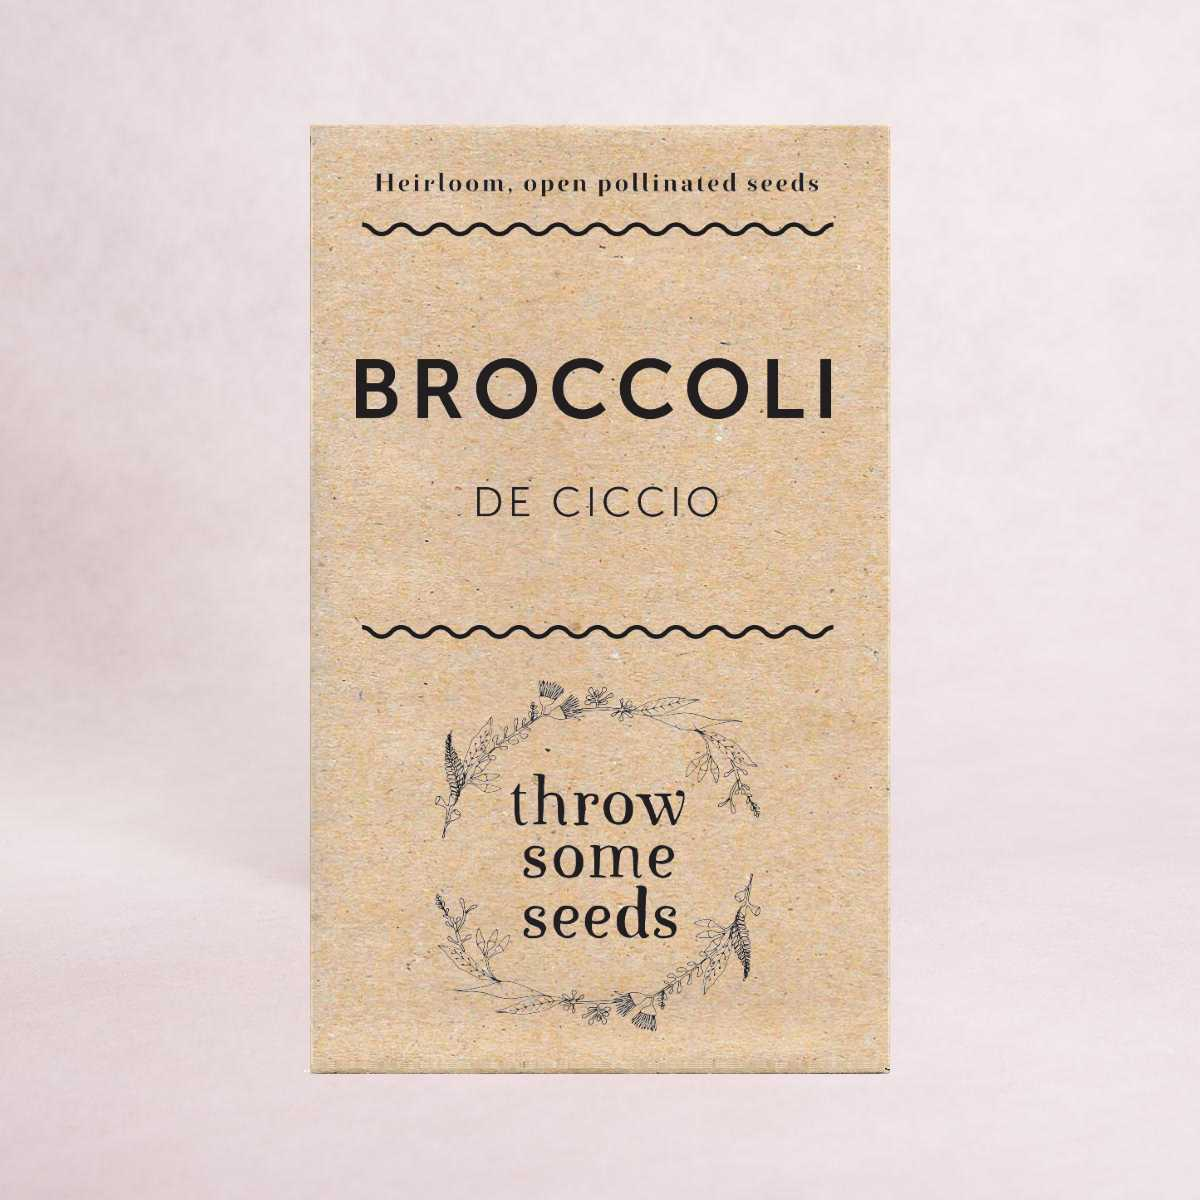 Broccoli (De Ciccio) Seeds - Seeds - Throw Some Seeds - Australian gardening gifts and eco products online!